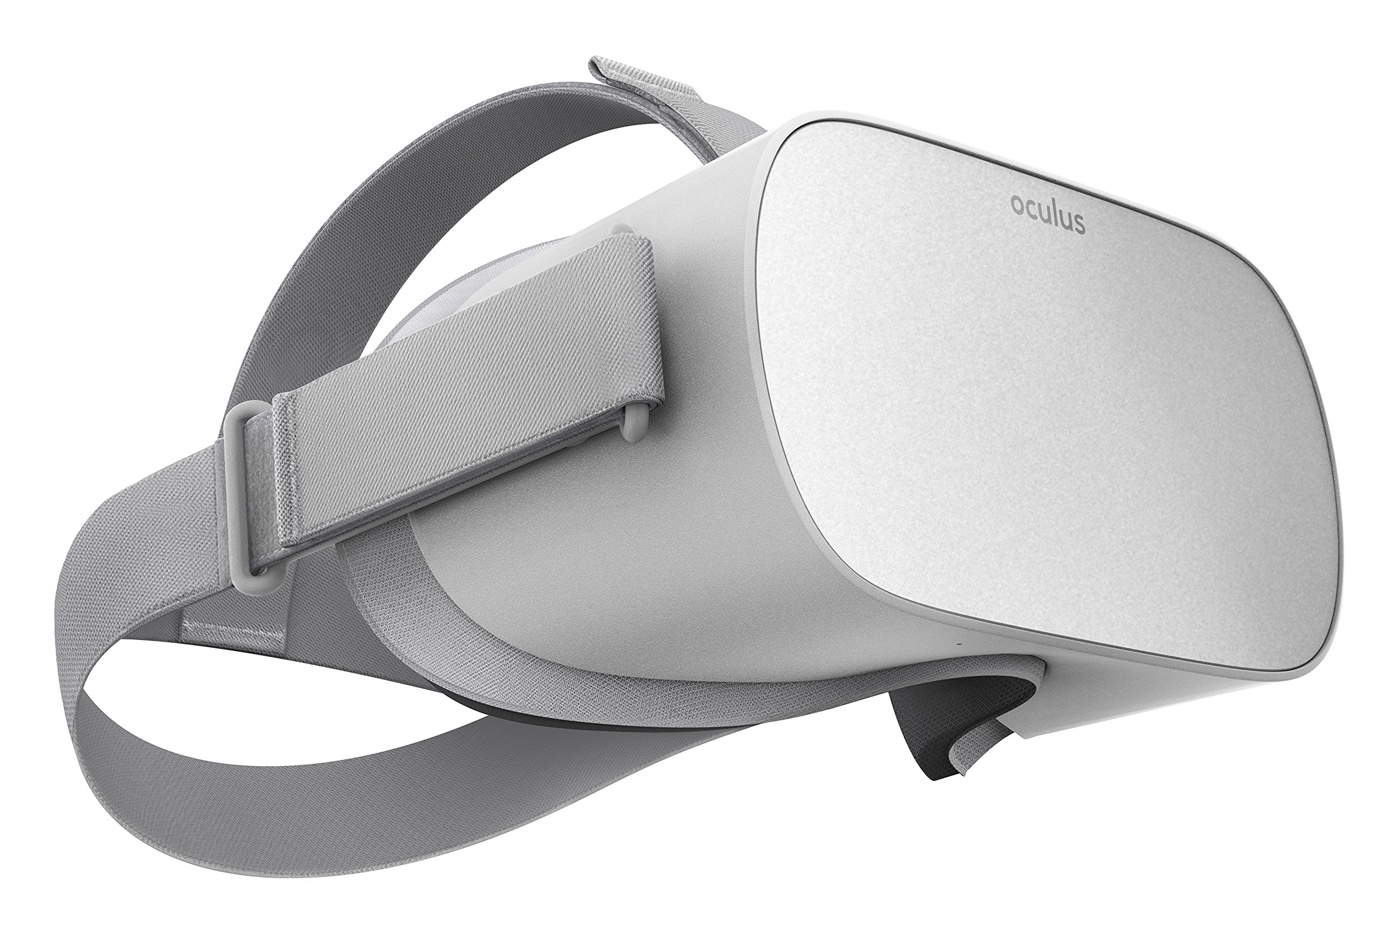 Oculus Go - Side by Side Design Comparison